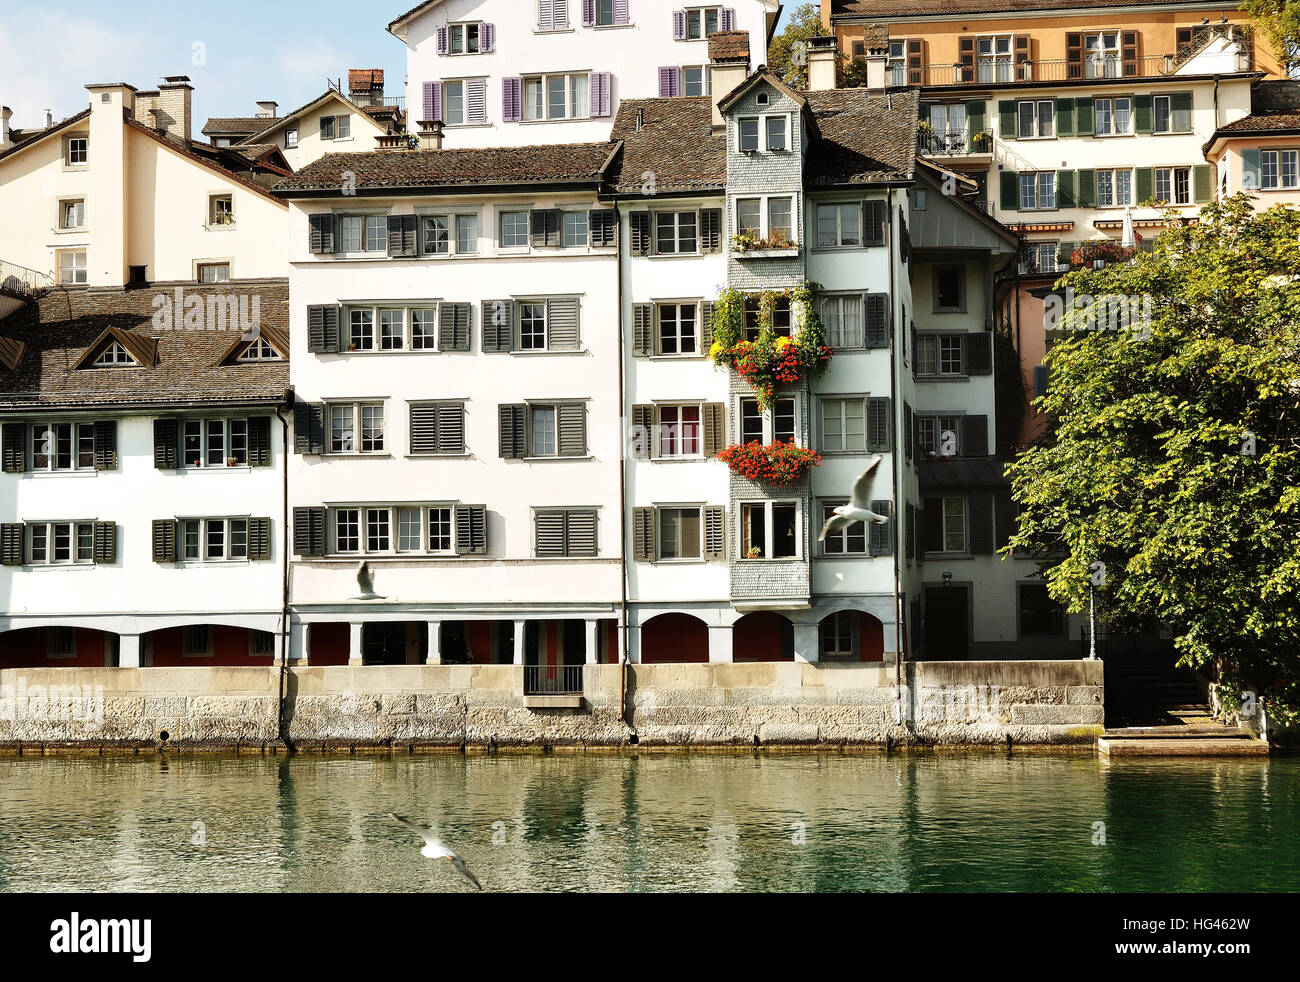 Zurich, Switzerland - view of typical swiss white house near river Limmat - Stock Image